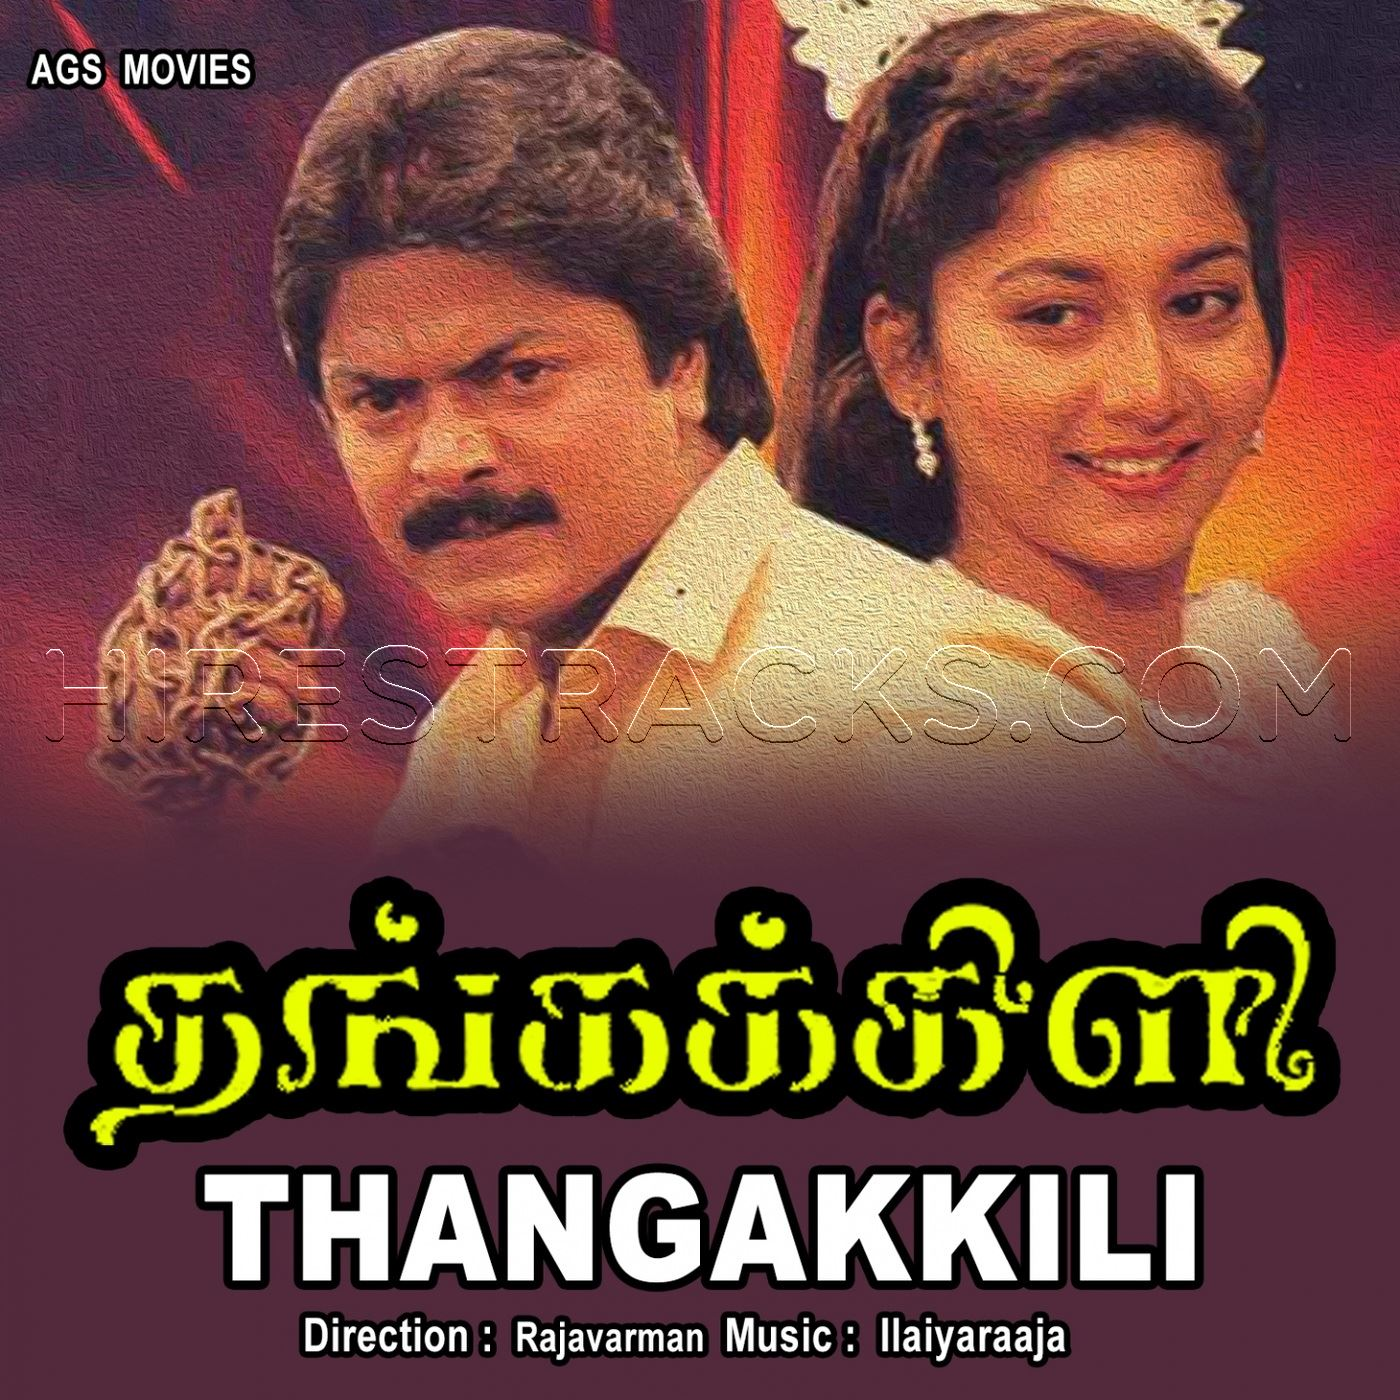 Thangakkili (1993) (Ilaiyaraaja) (Music Master) [Digital-DL-FLAC]